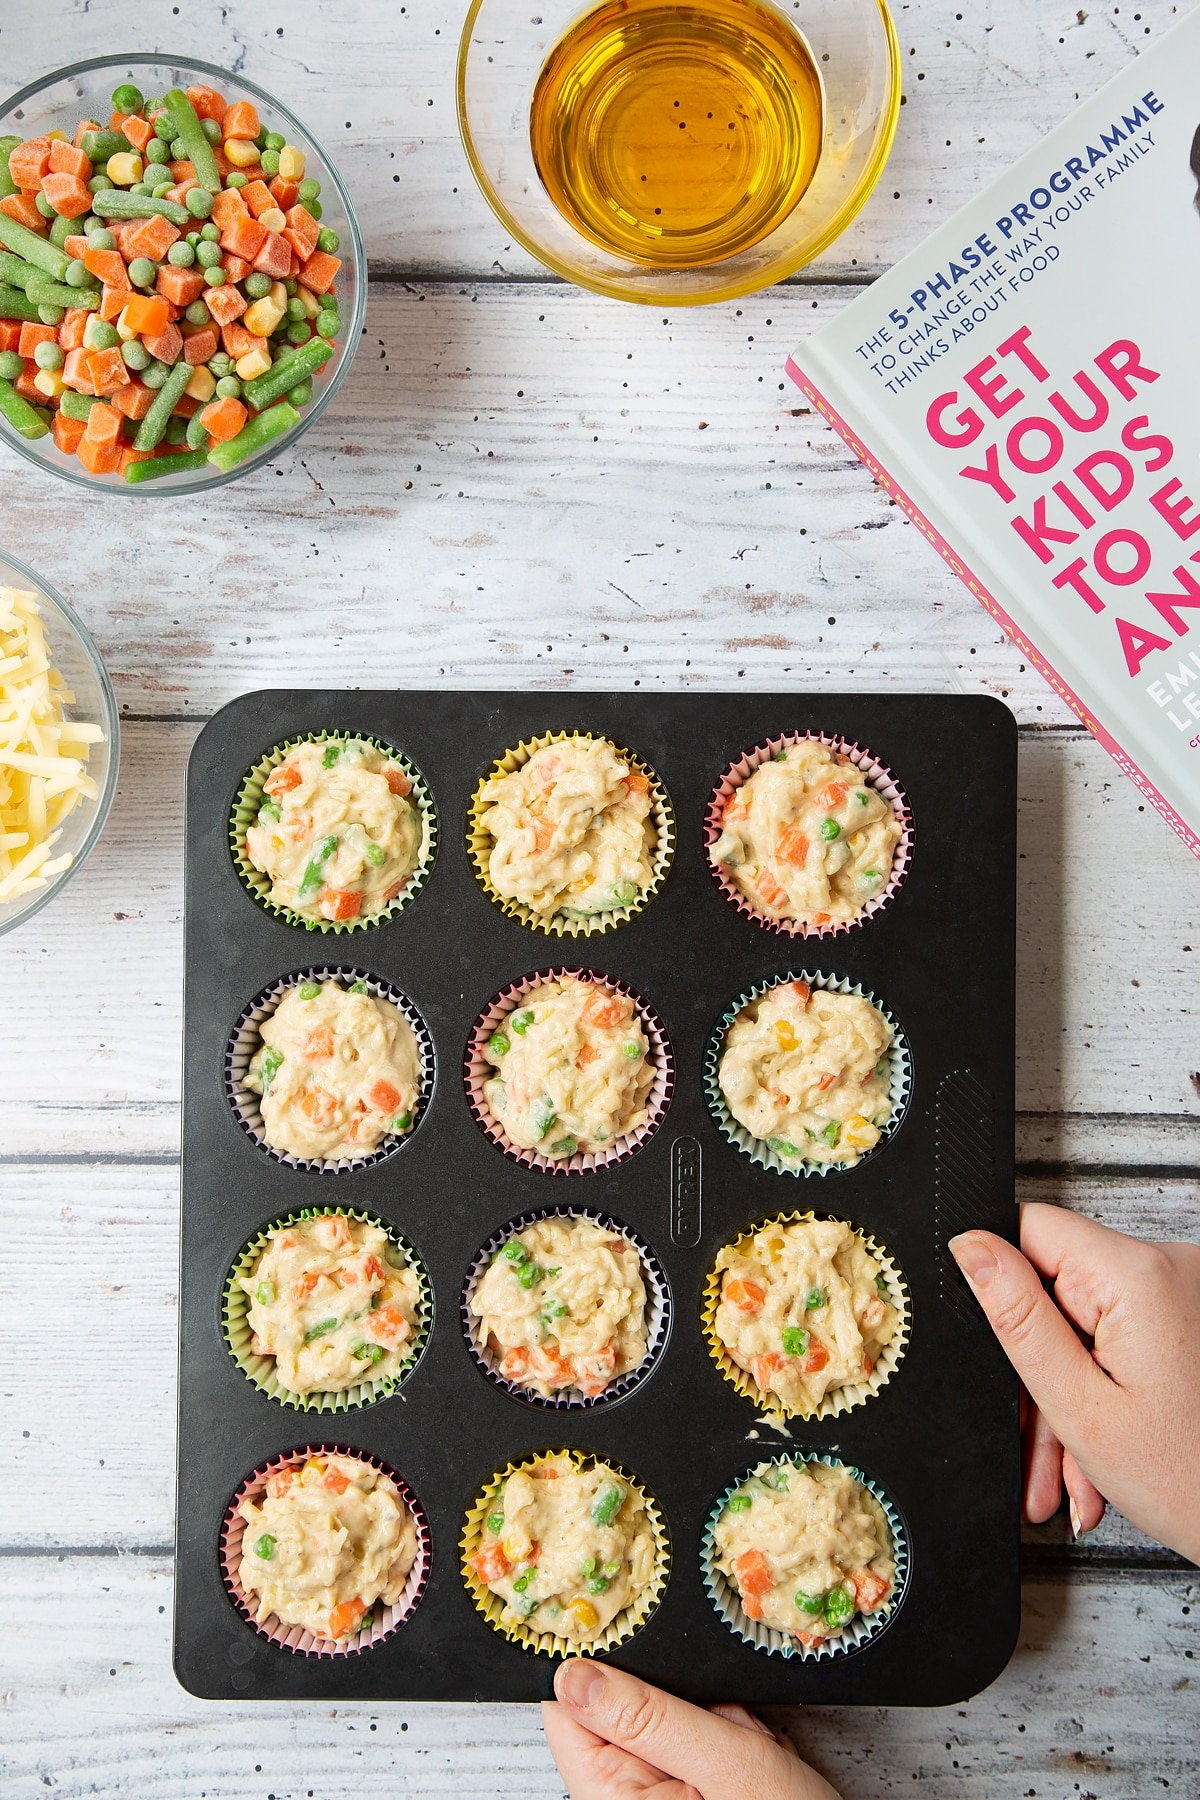 A 12-hole muffin tray lined with muffins cases and filled with savoury muffin batter with cheese and mixed chopped vegetables. The tray is surrounded by the ingredients for savoury vegetable muffins.